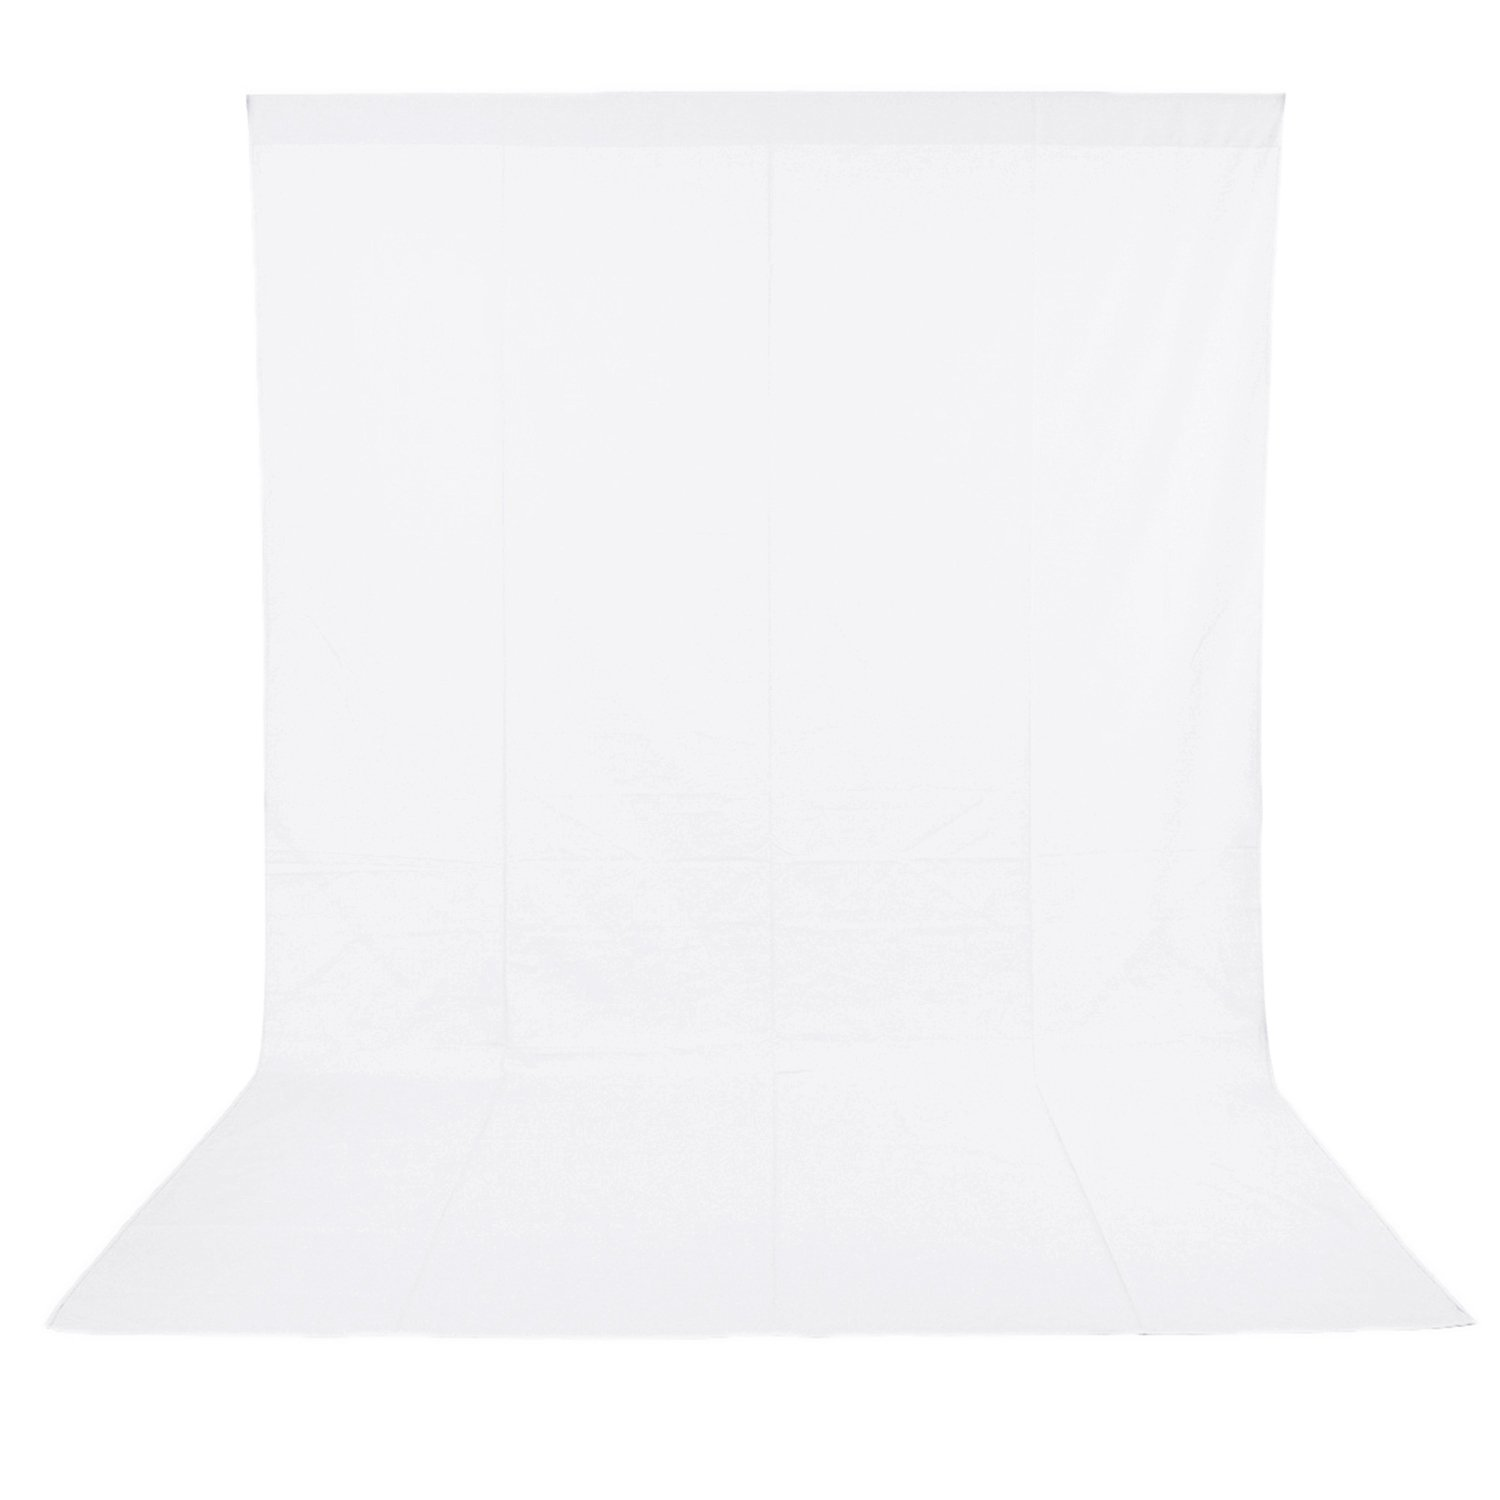 Neewer 6 x 9FT / 1.8 x 2.8M Photo Studio 100% Pure Muslin...